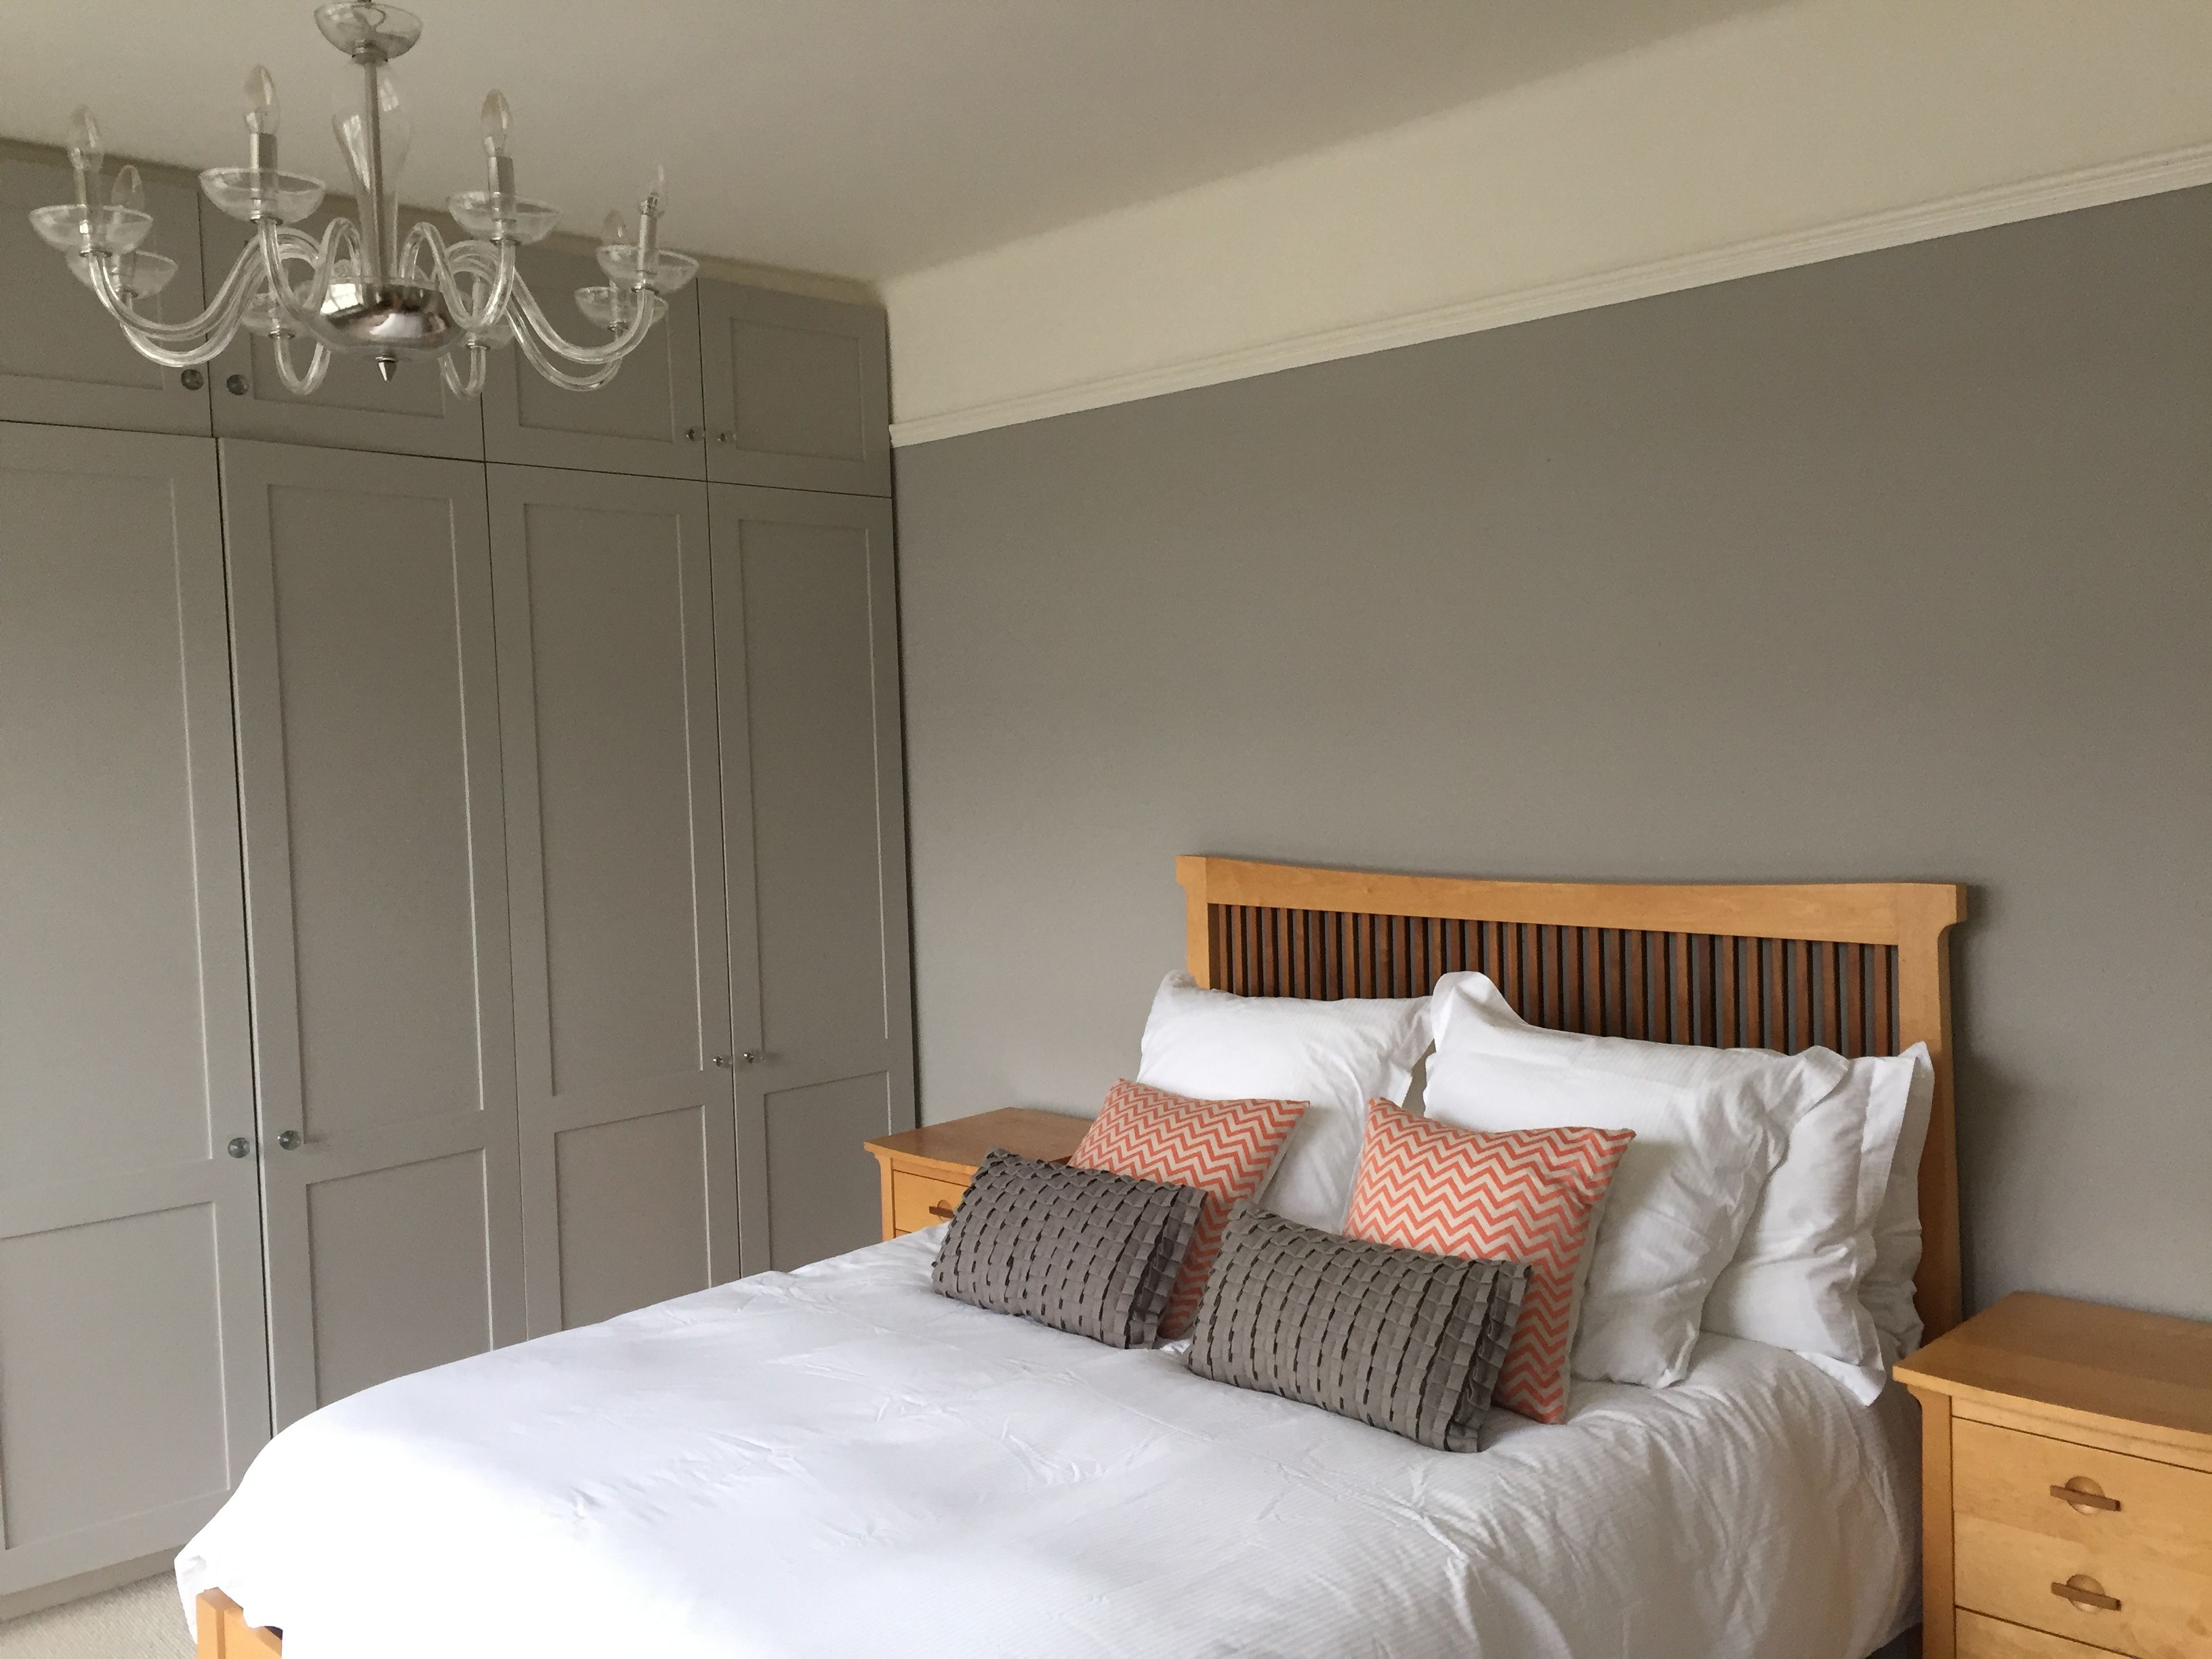 Best Bedroom Painted In Farrow And Ball Purbeck Stone And 400 x 300